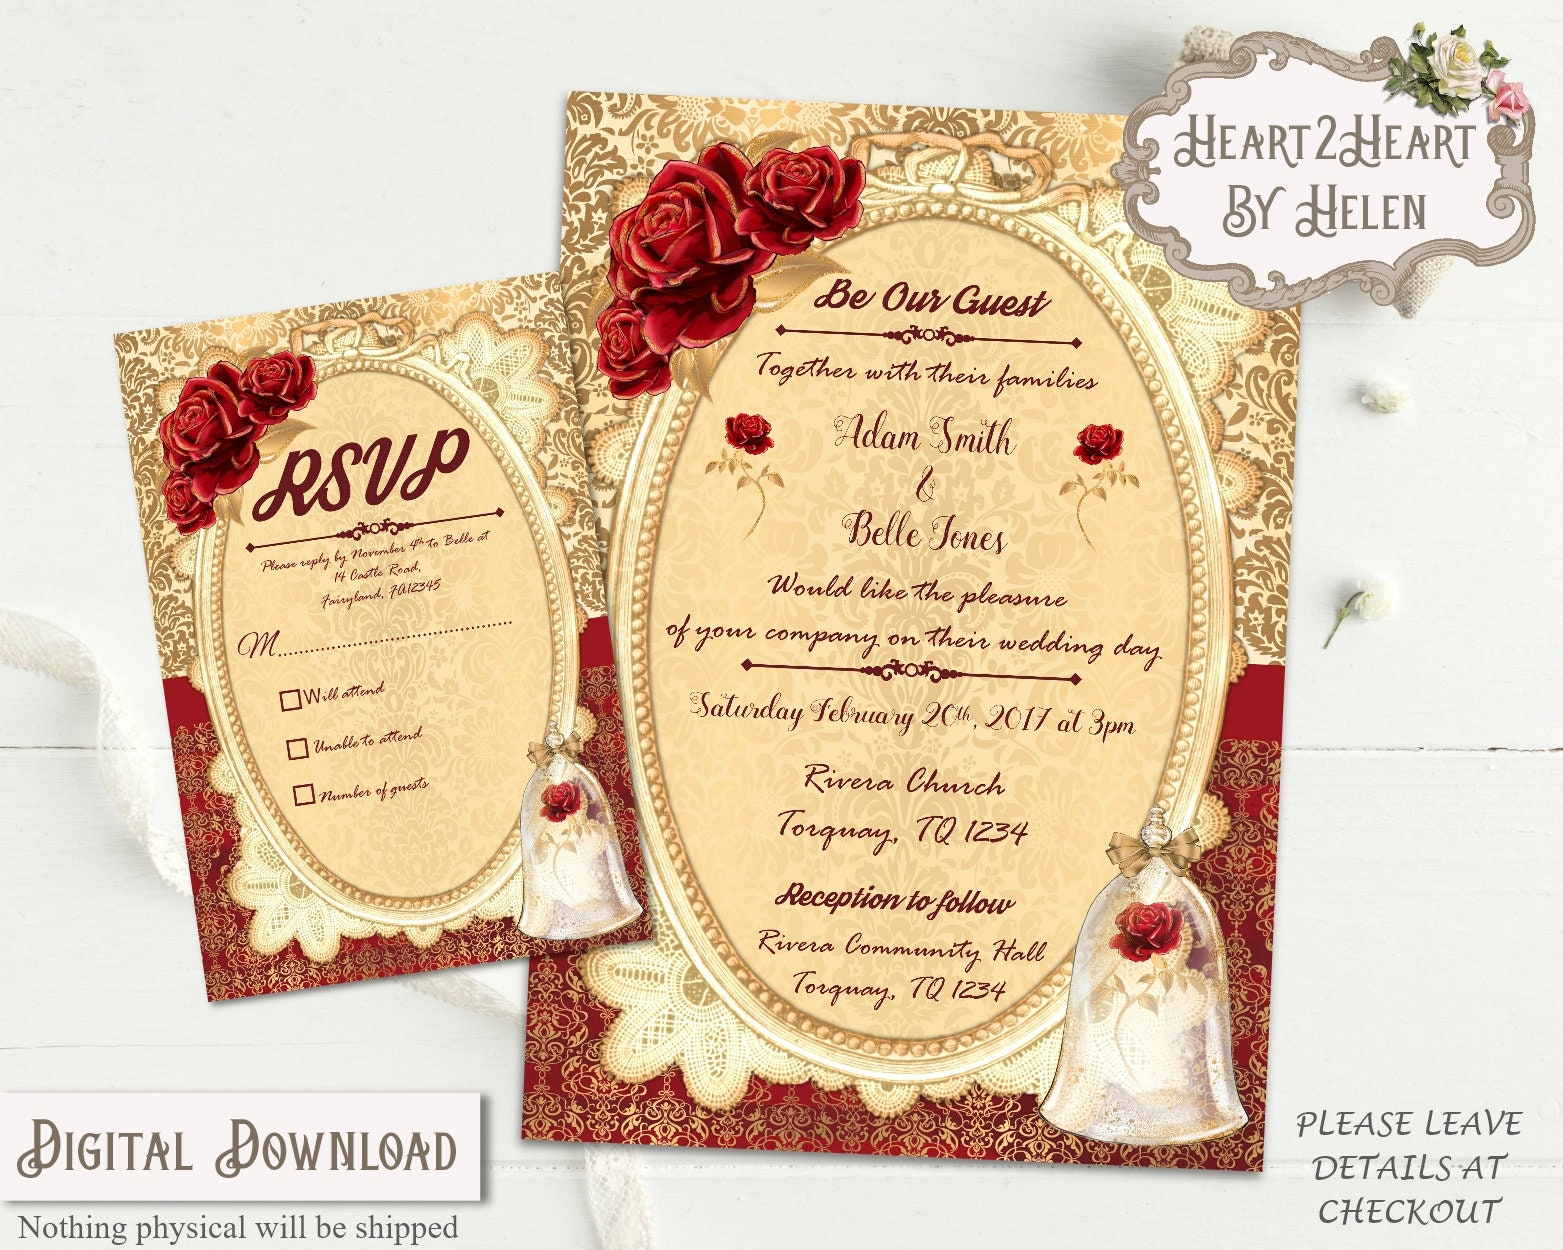 Beauty and the Beast Wedding Invitations Wedding Invite Red